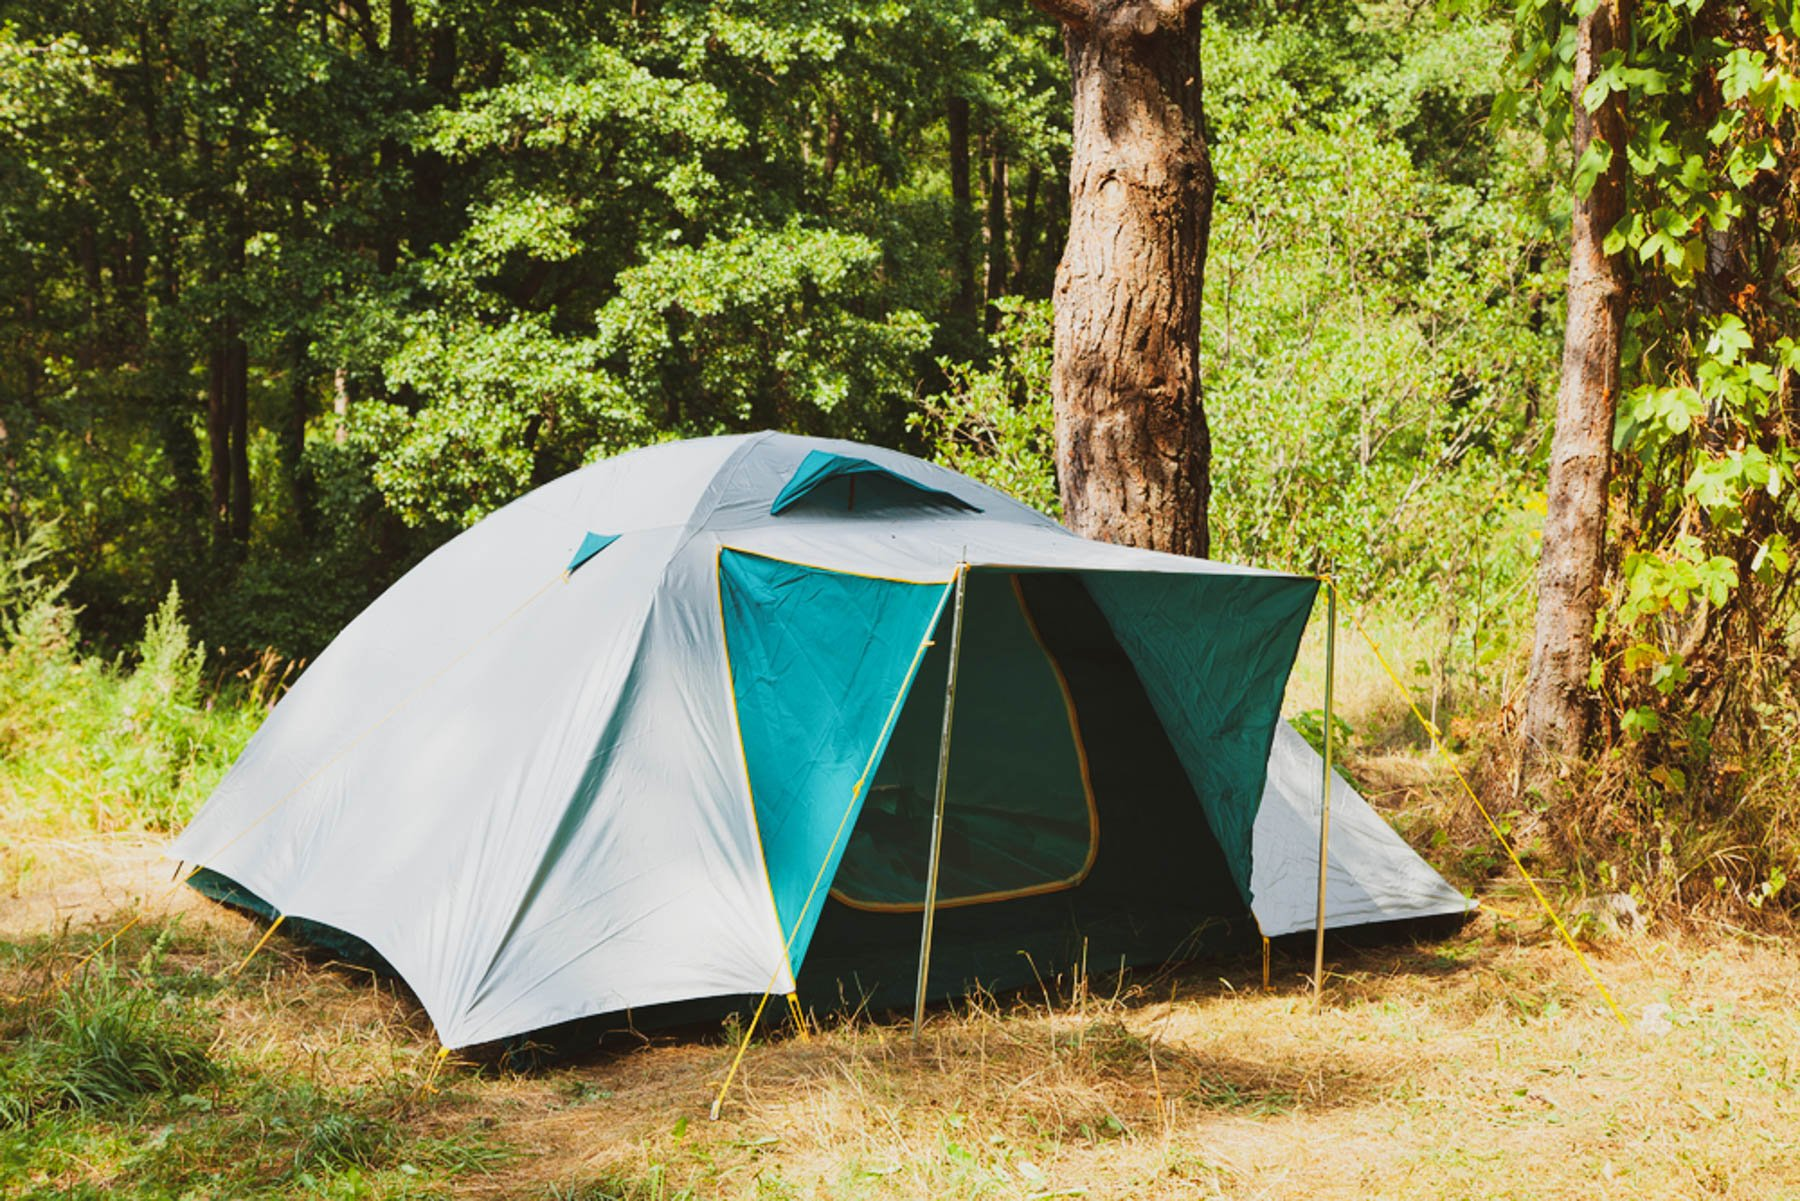 How To Clean A Tent That Smells With These 6 Simple Tips